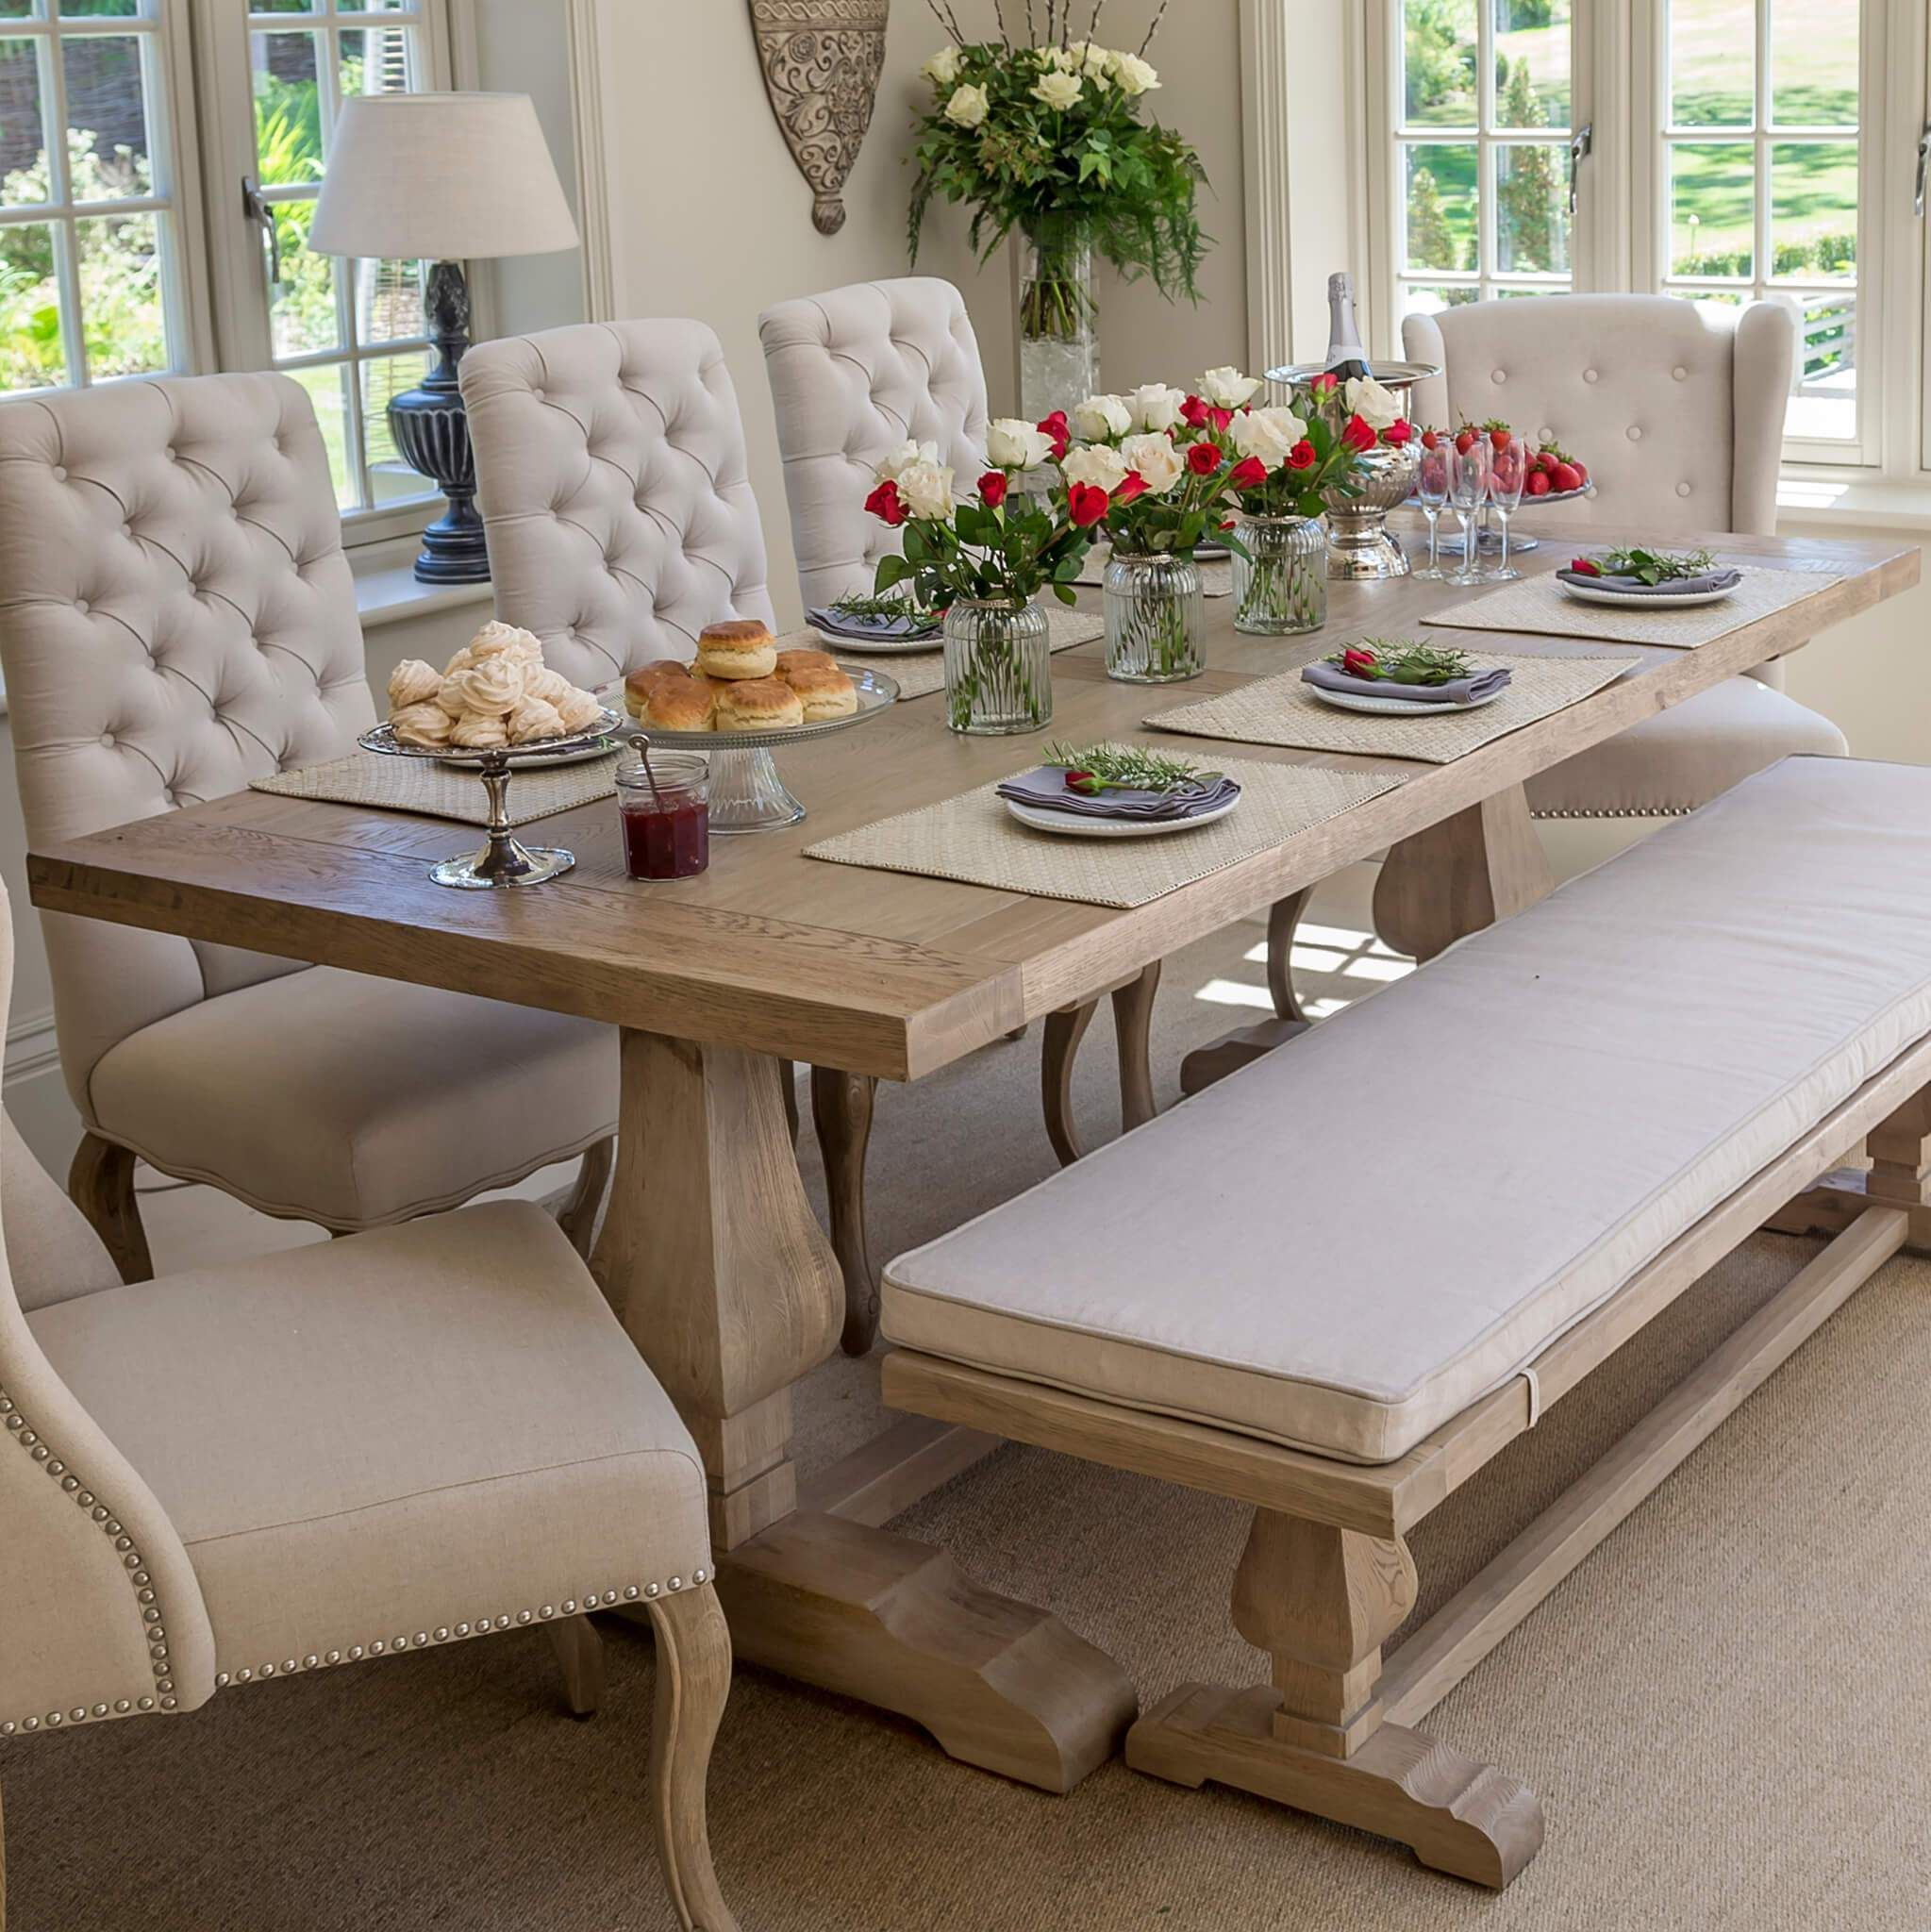 Pin On How To Decorate Dining Table